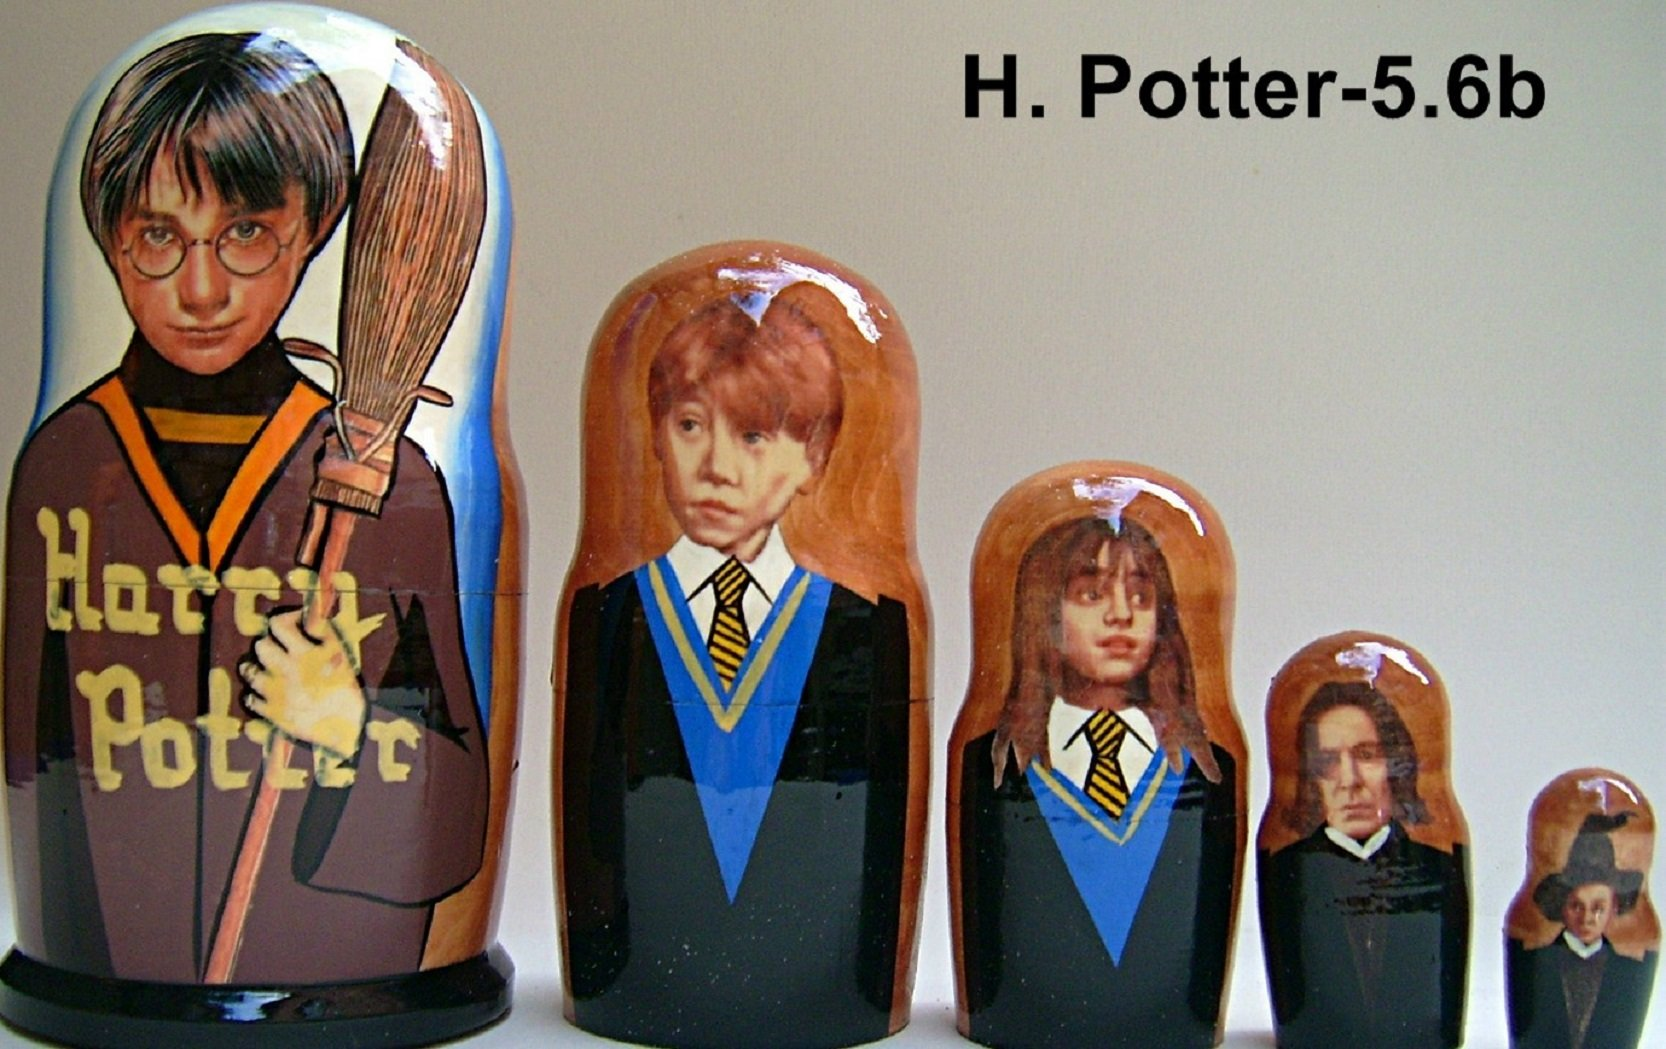 Harry Potter-1 Russian Nesting Doll 5 Pcs / 6 in by hand made